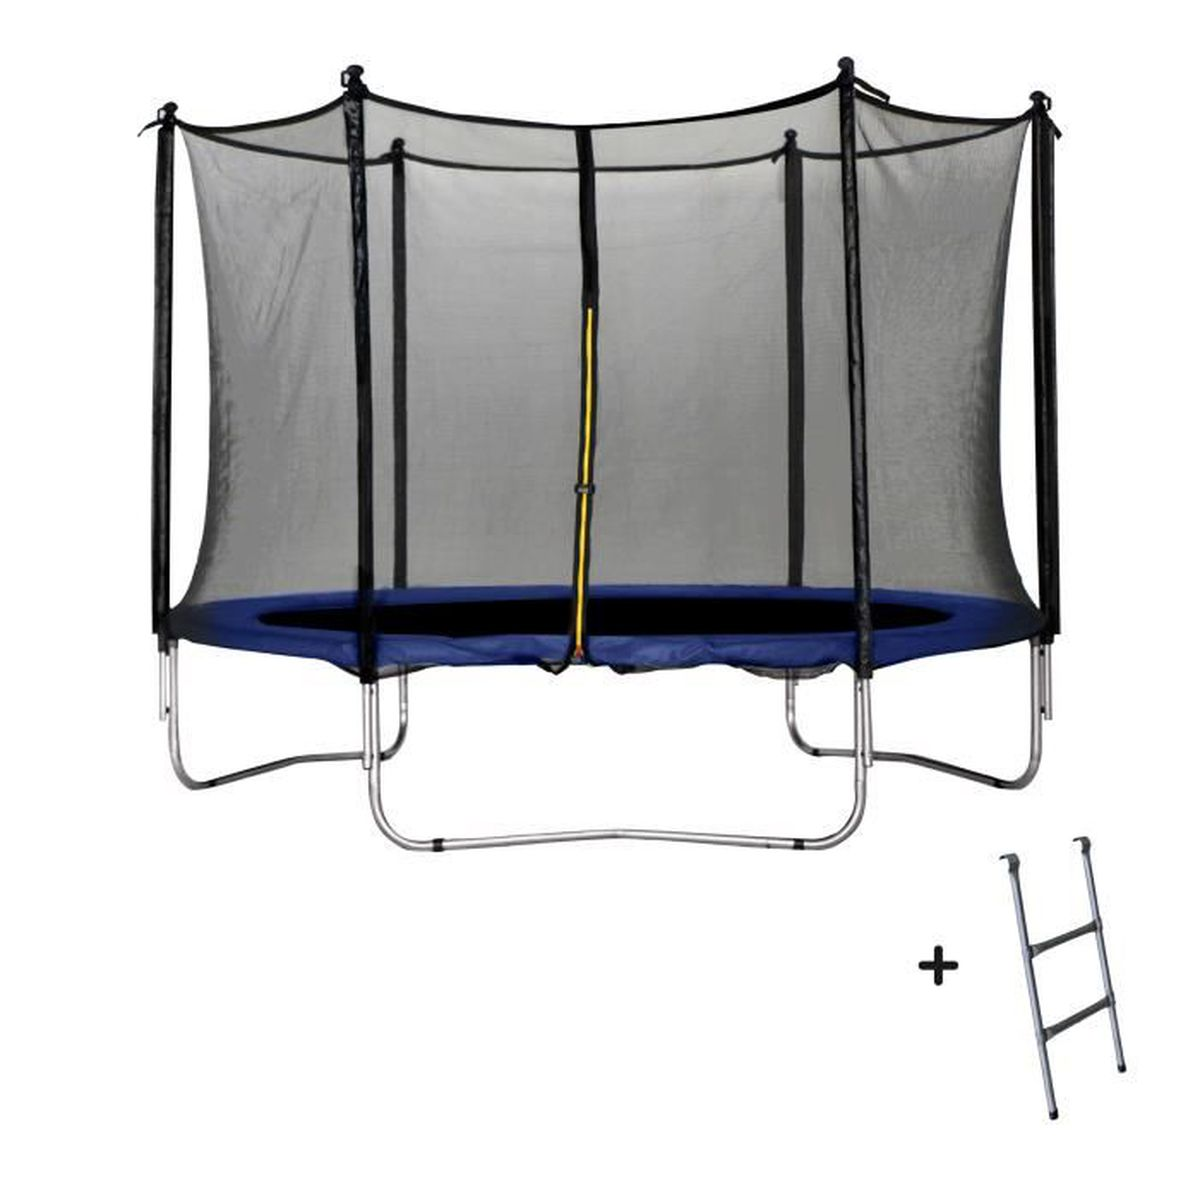 trampoline bleu 305 cm achat vente trampoline cdiscount. Black Bedroom Furniture Sets. Home Design Ideas